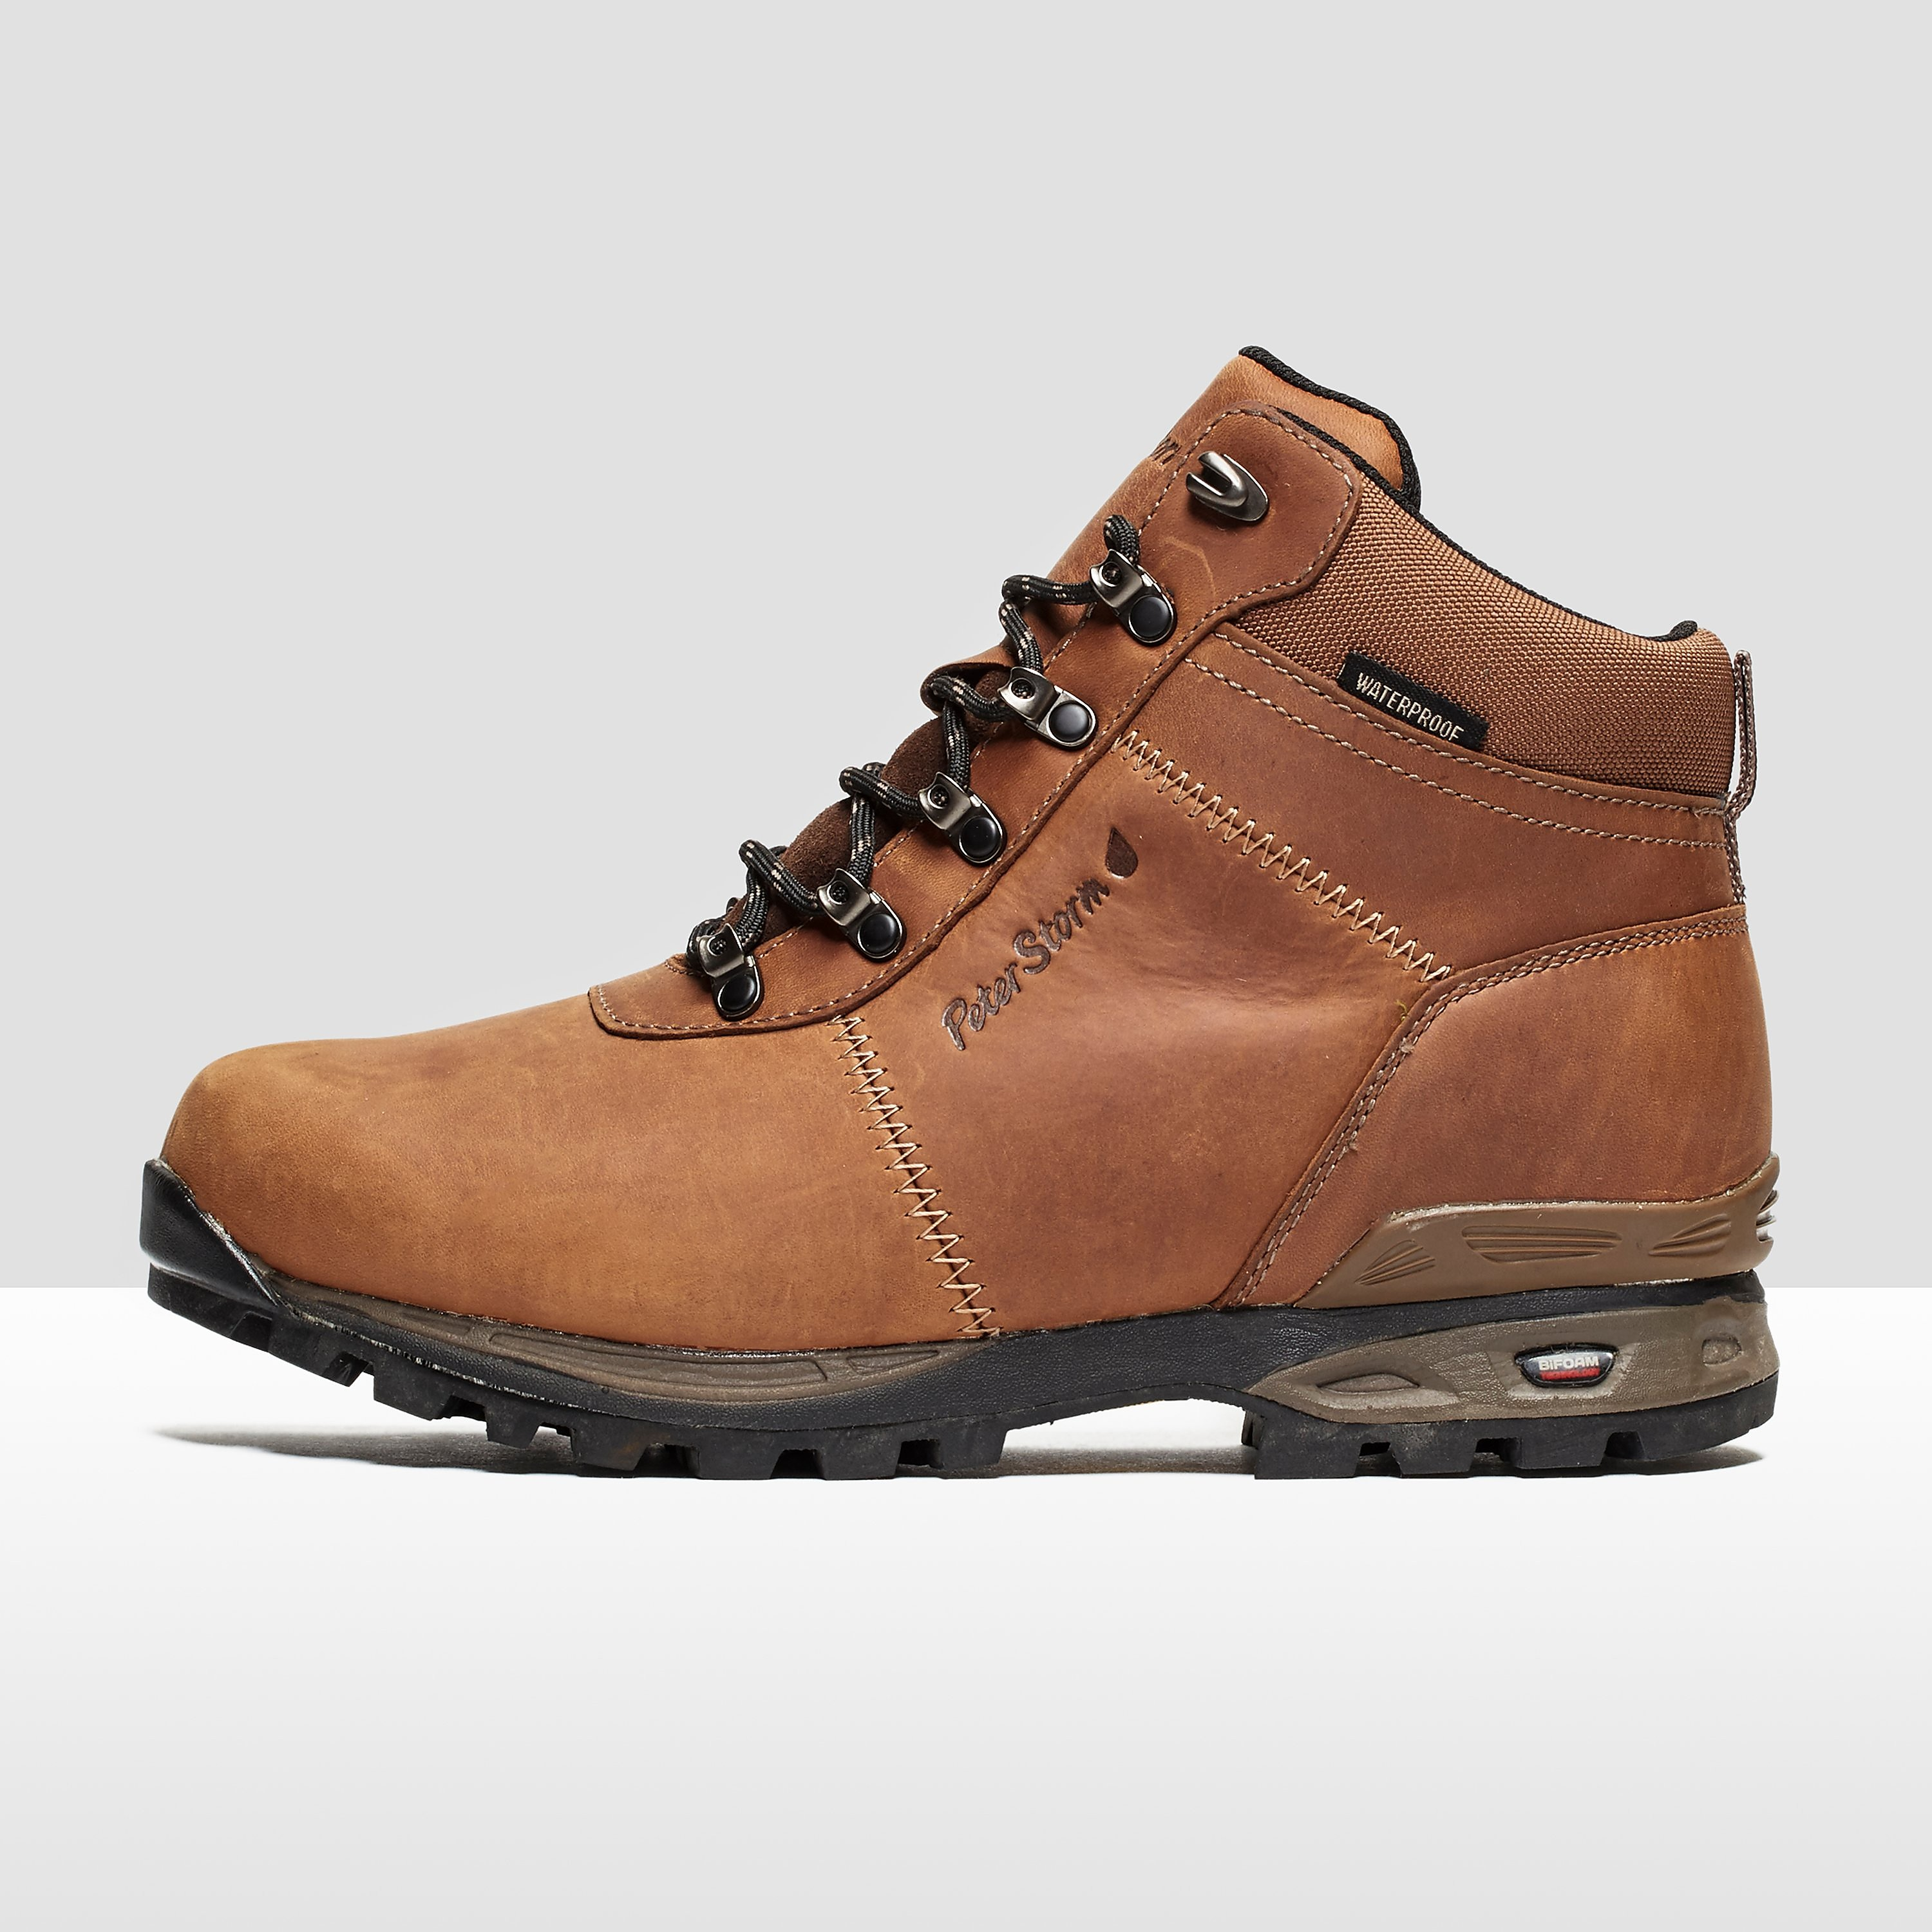 PETER STORM Men's Snowdon Walking Boots